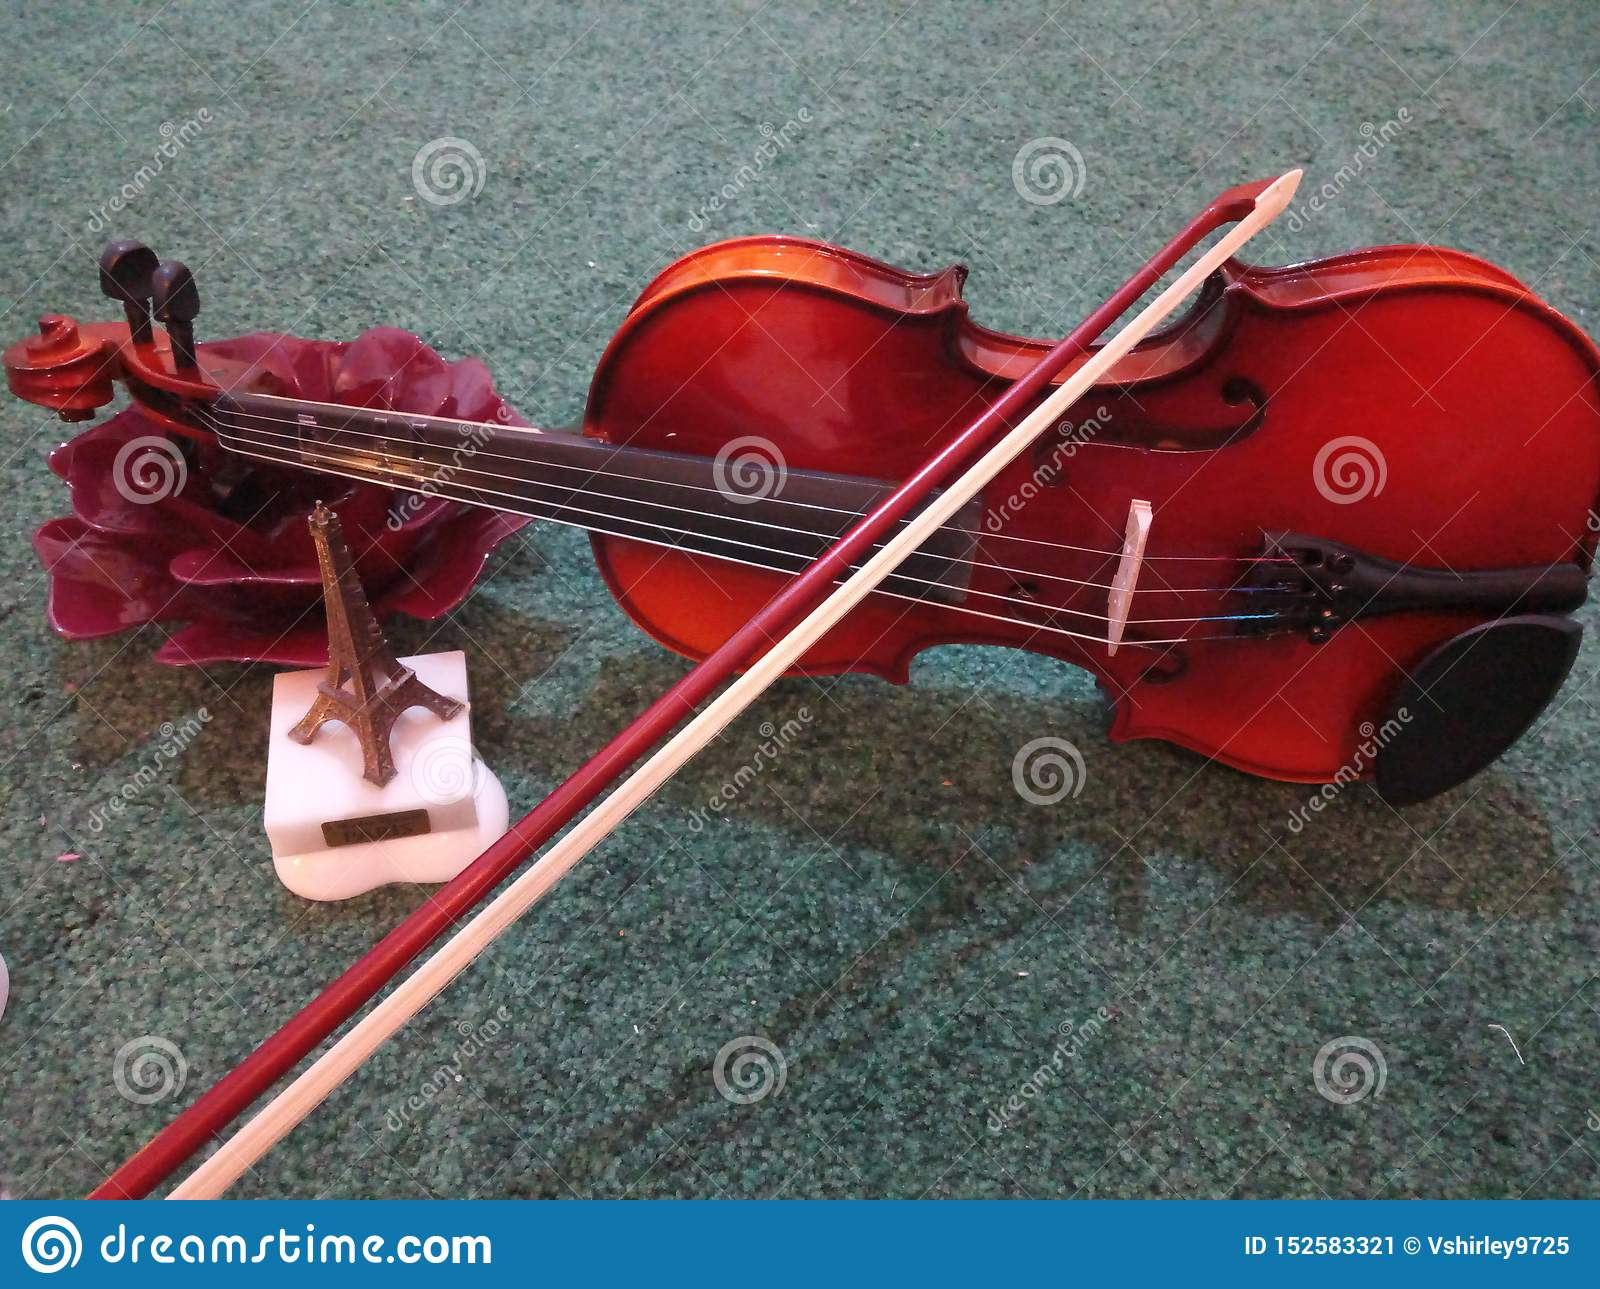 Violin lovers sounds softly and harmony to my ear